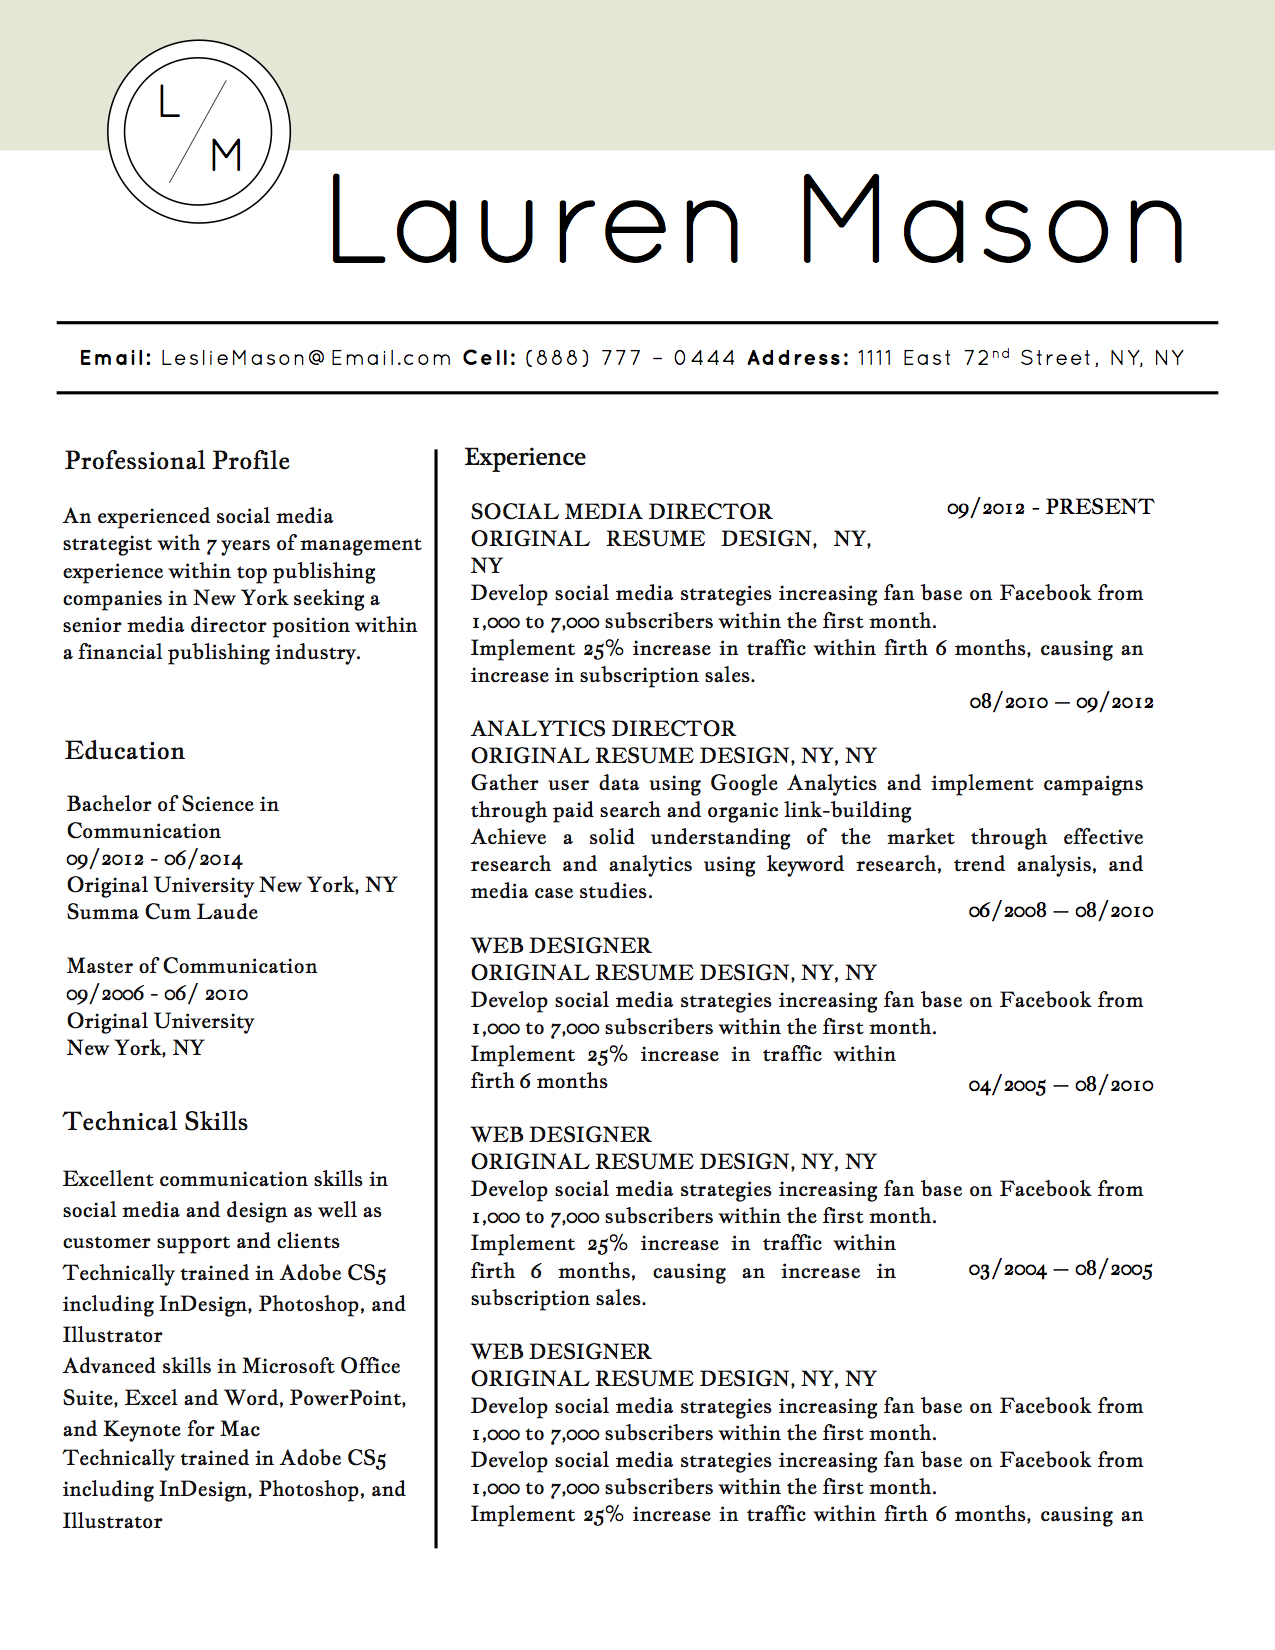 lauren mason resume template